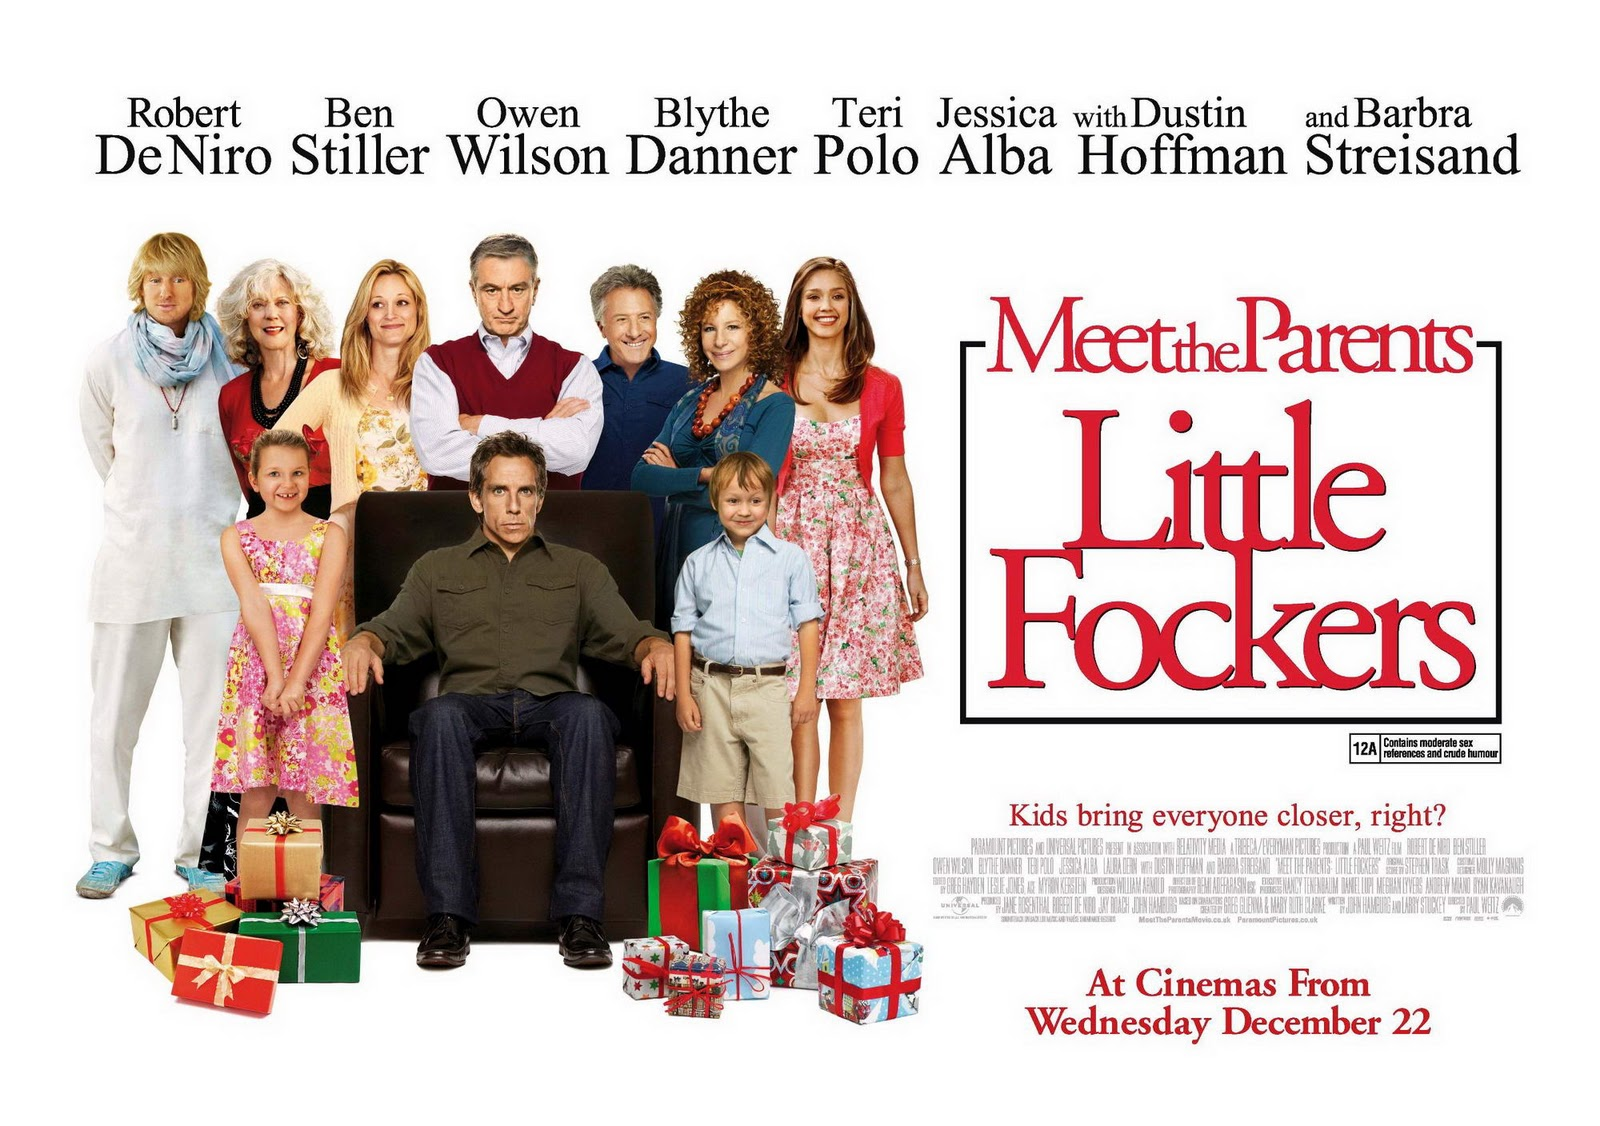 what came first meet the fockers and parents